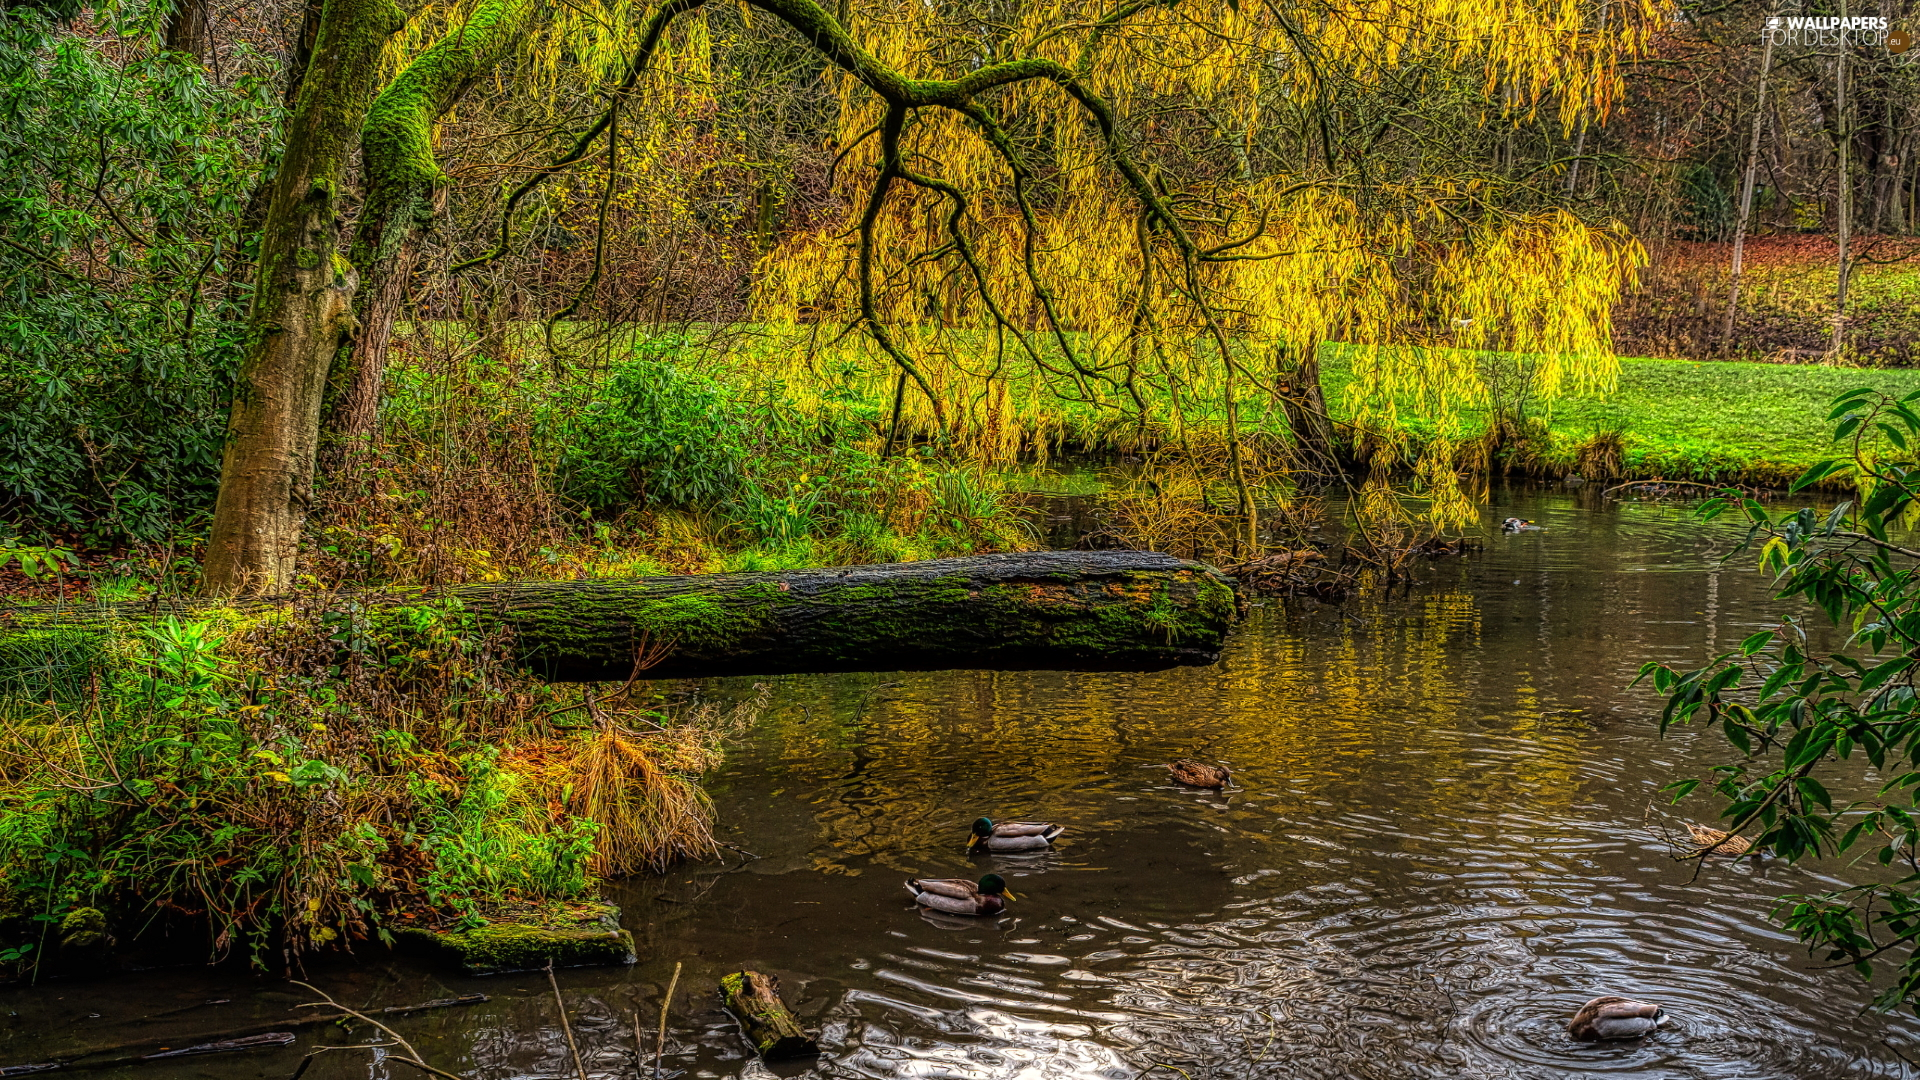 trees, inclined, HDR, branch pics, Spring, Pond - car, Park, ducks